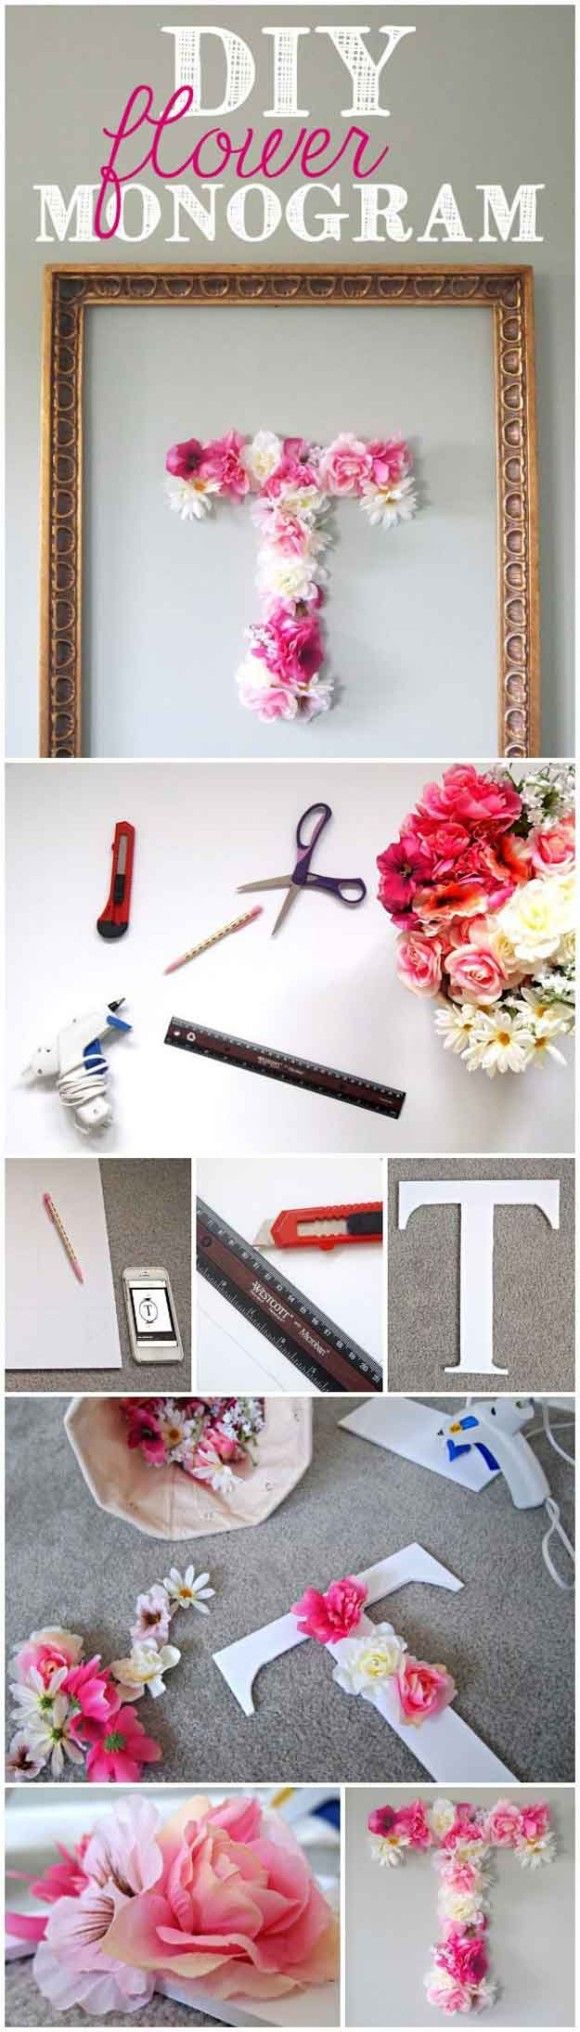 Bedroom Decor Homemade best 20+ diy bedroom ideas on pinterest | diy bedroom decor, girls